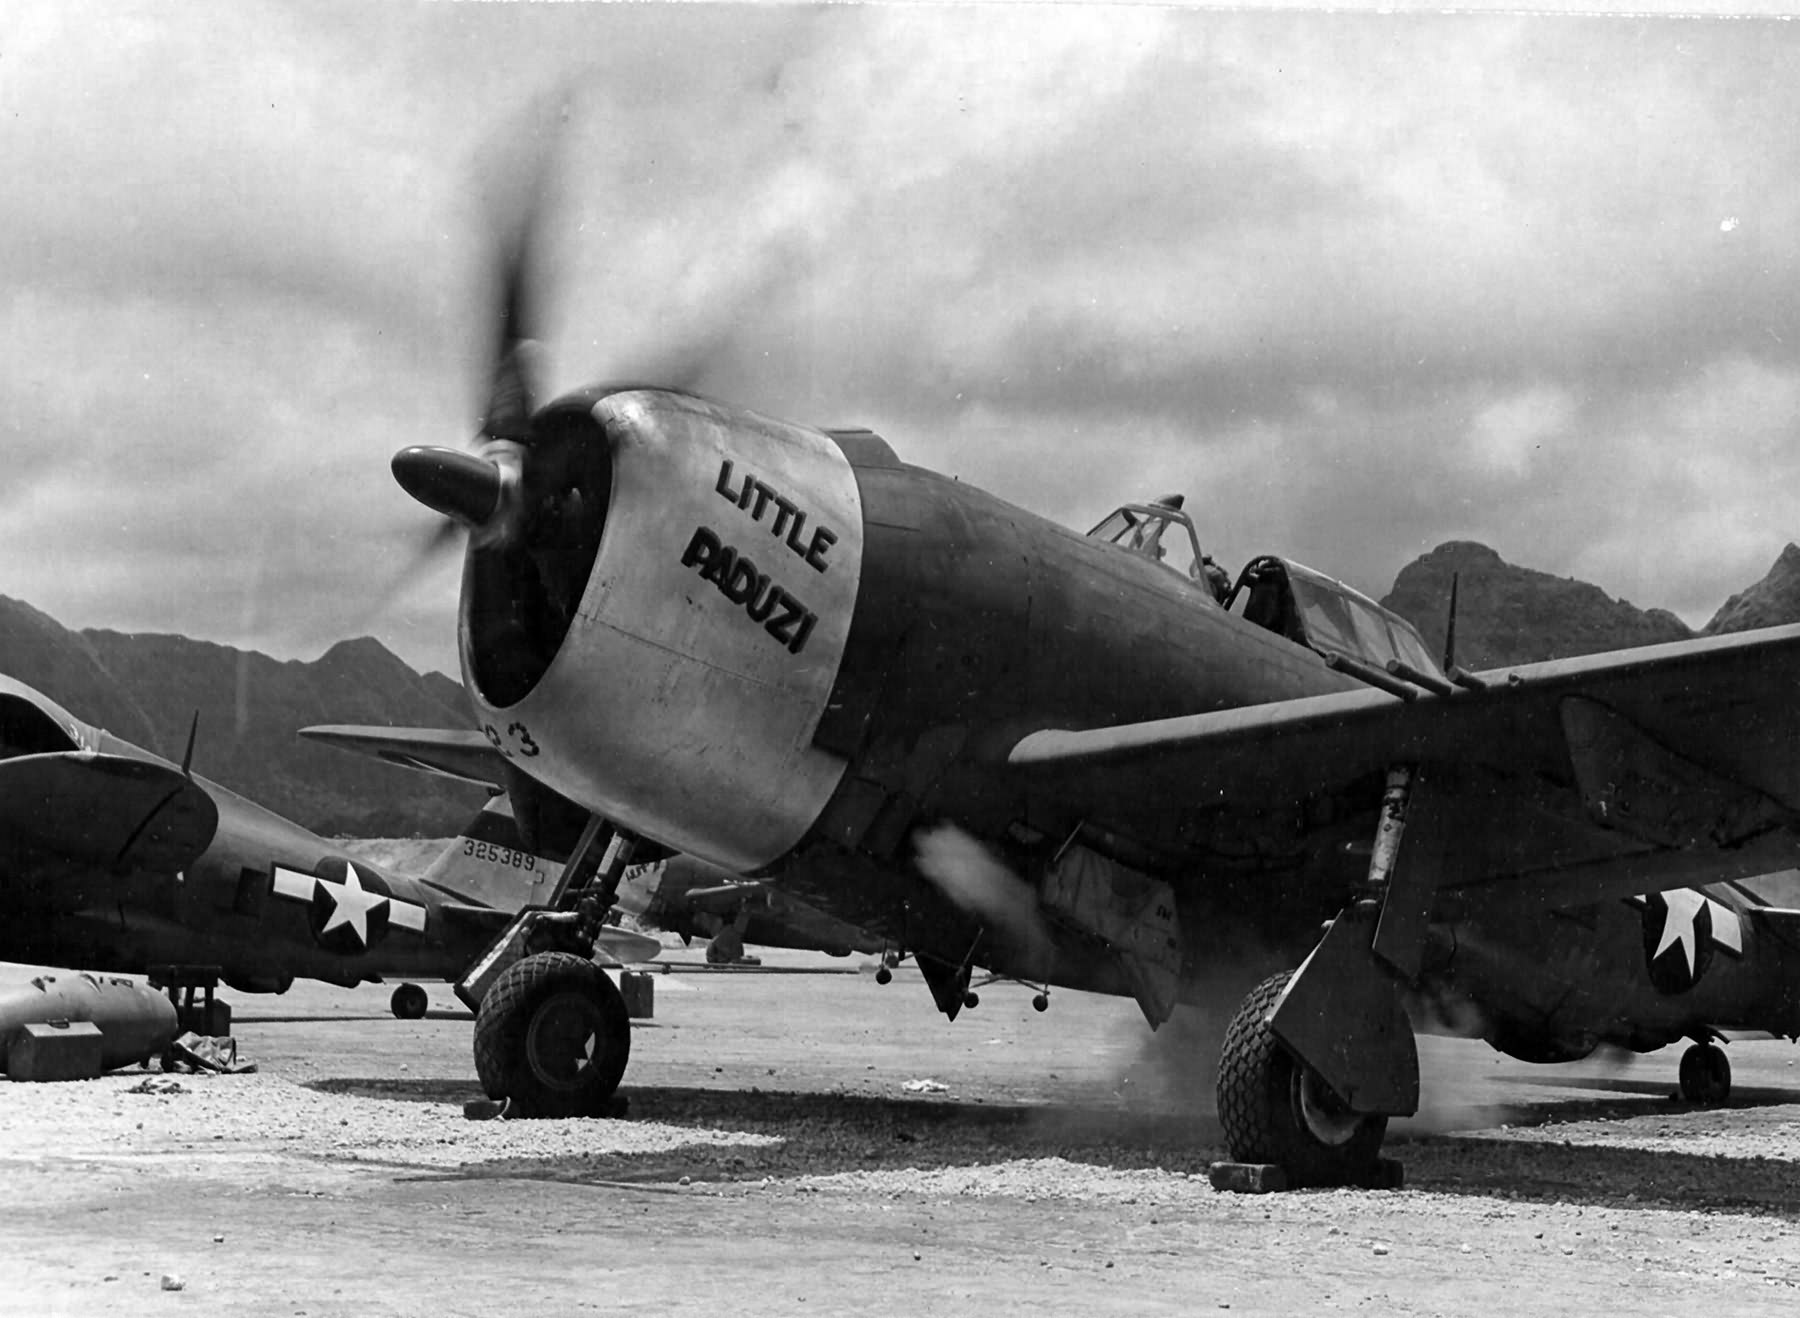 P-47_Little_Paduzi_of_19th_FS_318th_FG.jpg